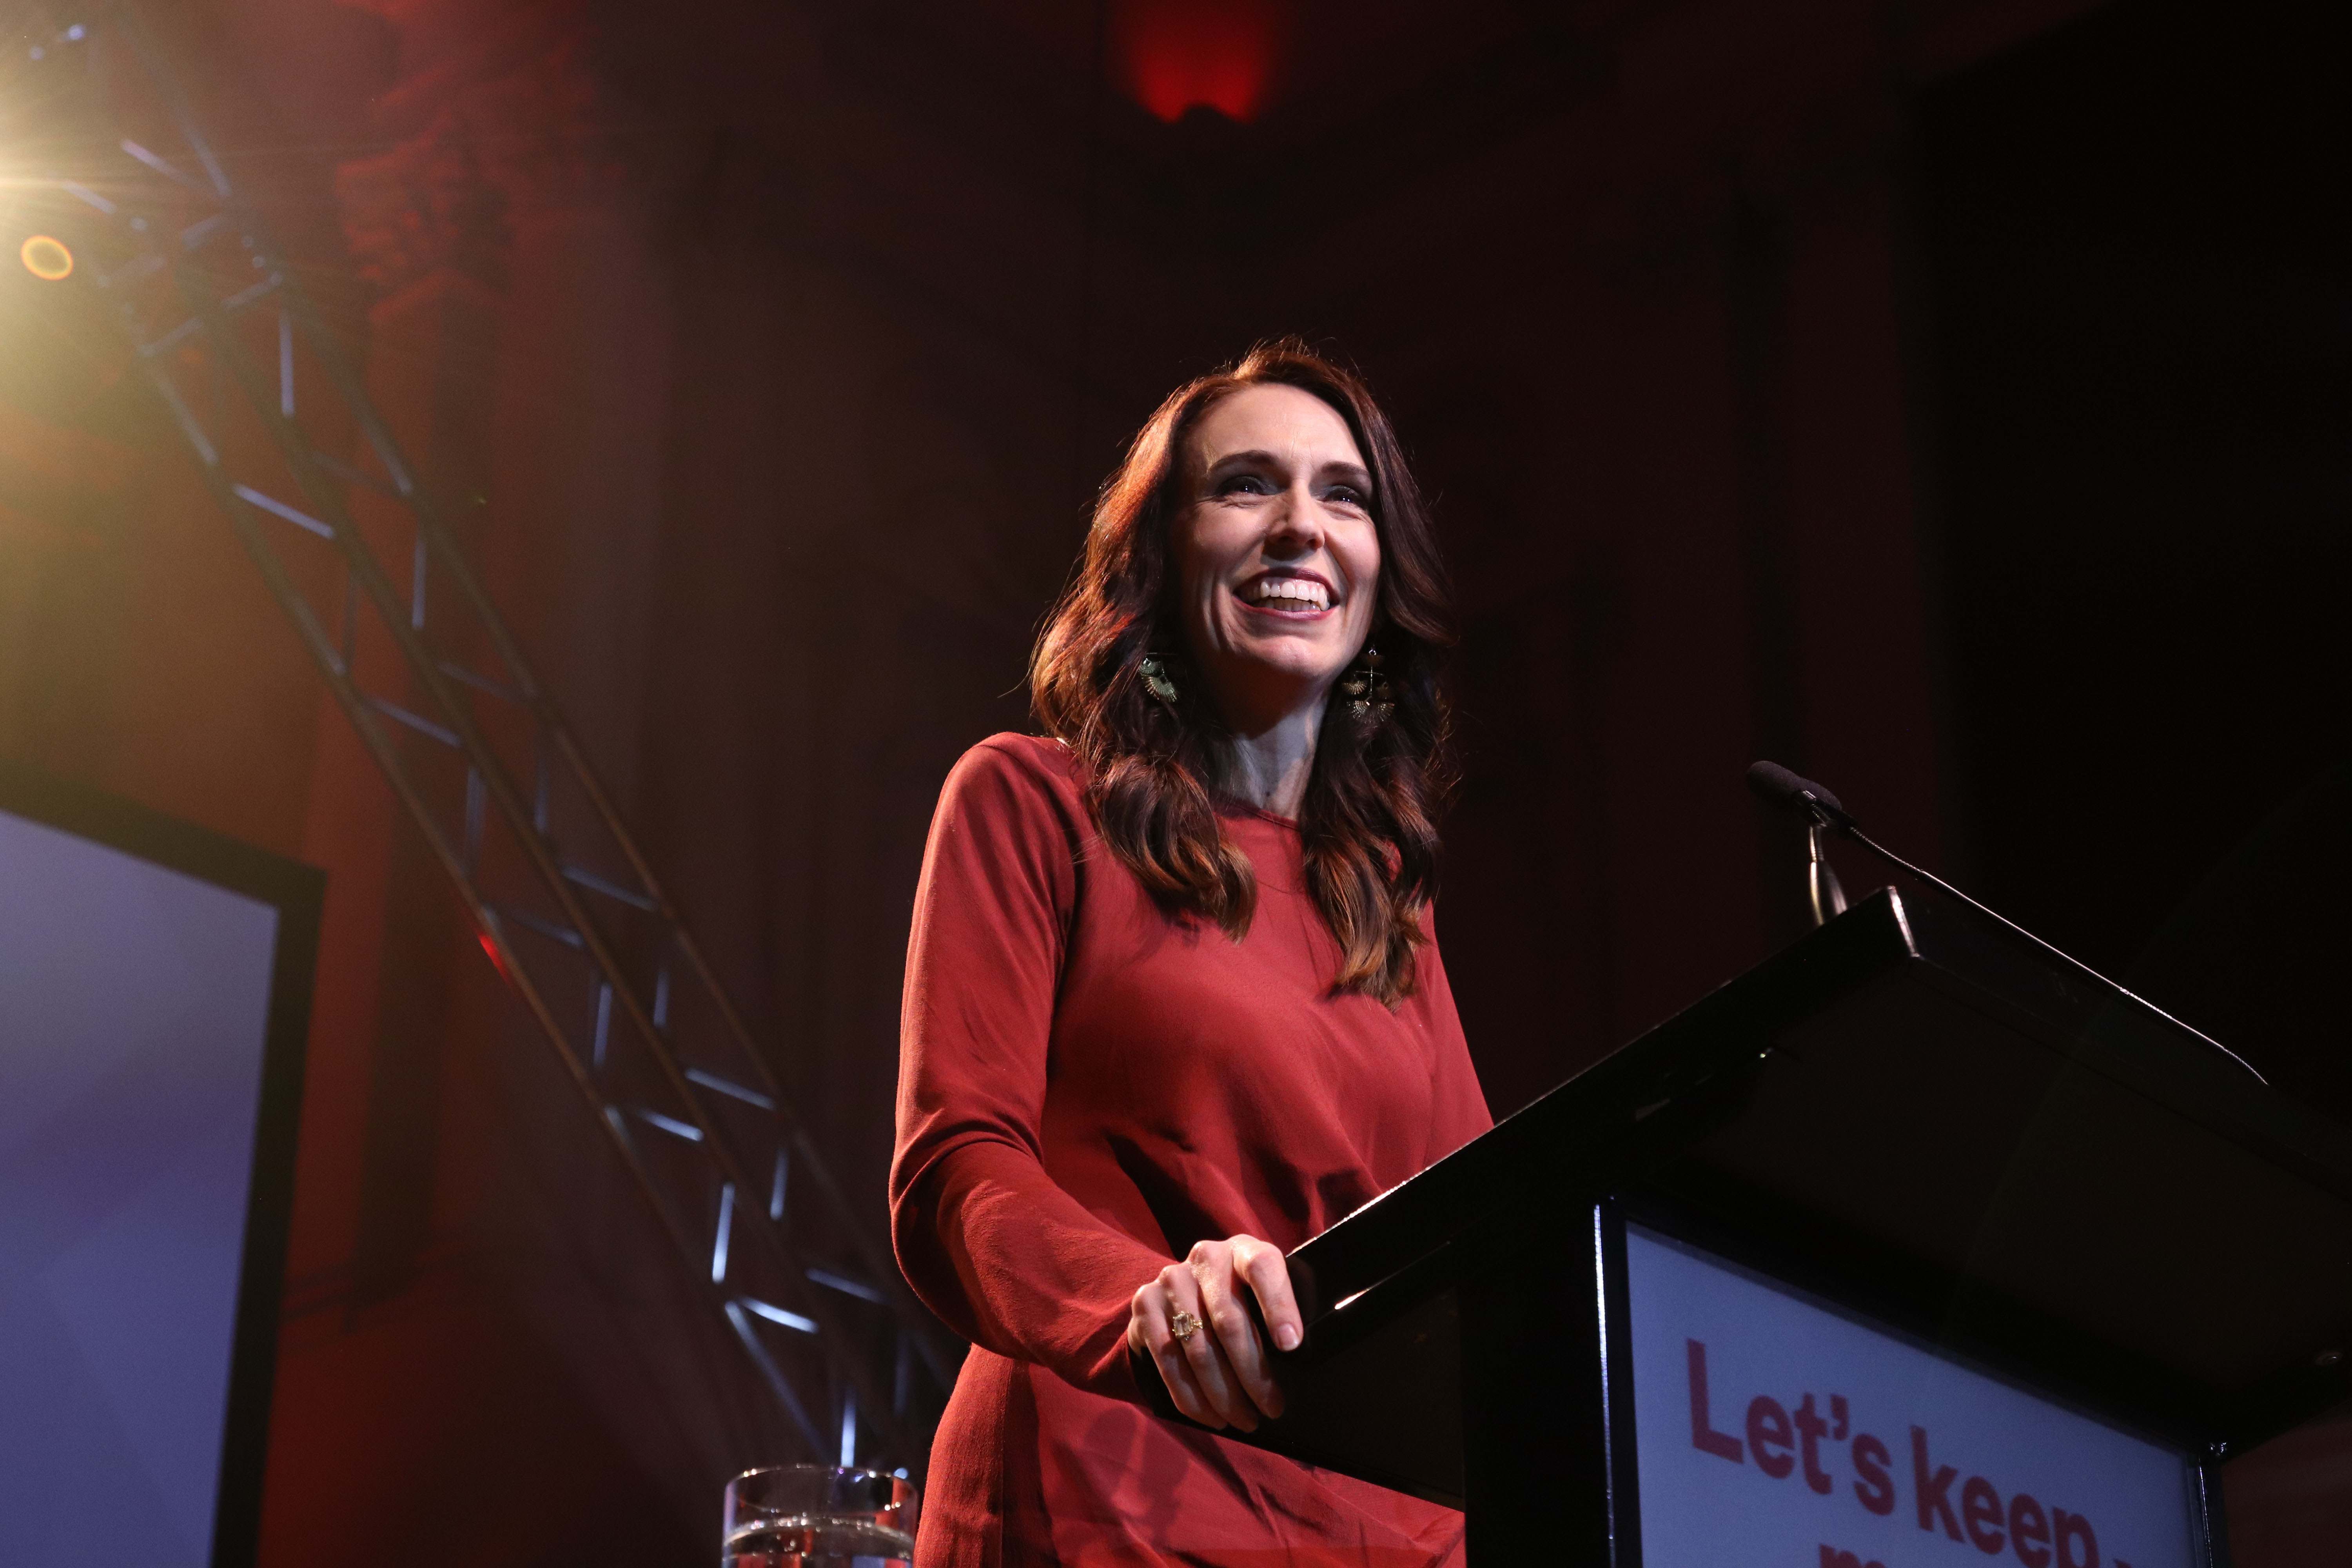 Jacinda Ardern smiles while speaking at a podium.